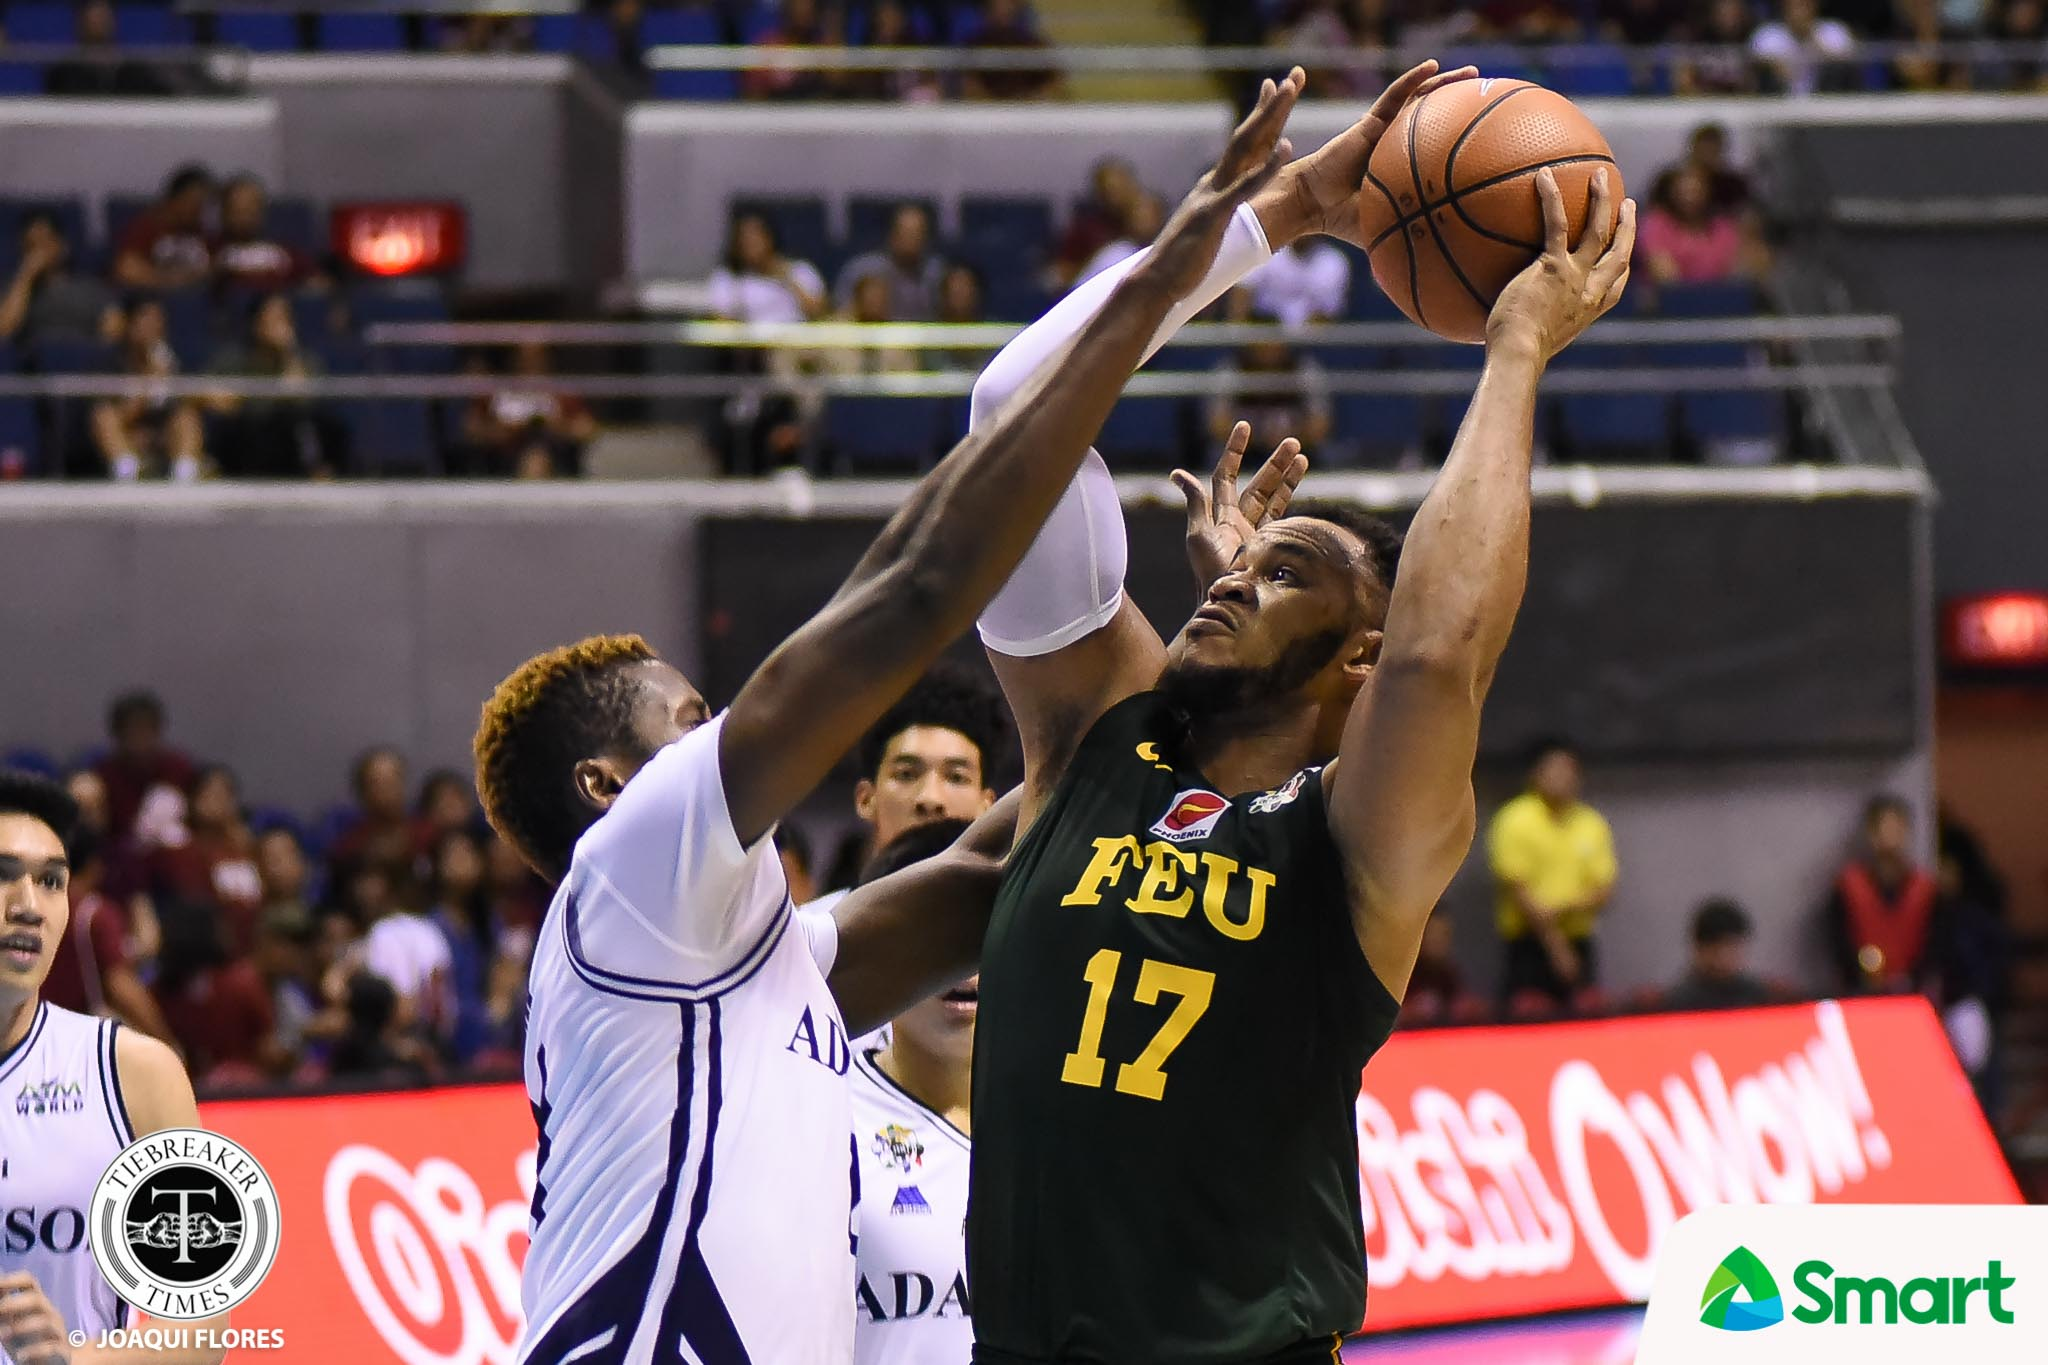 Tiebreaker Times With their backs against the wall, Tamaraws played like brothers says Prince Orizu Basketball FEU News UAAP  UAAP Season 80 Men's Basketball UAAP Season 80 Richard Escoto Prince Orizu Olsen Racela FEU Men's Basketball Arvin Tolentino